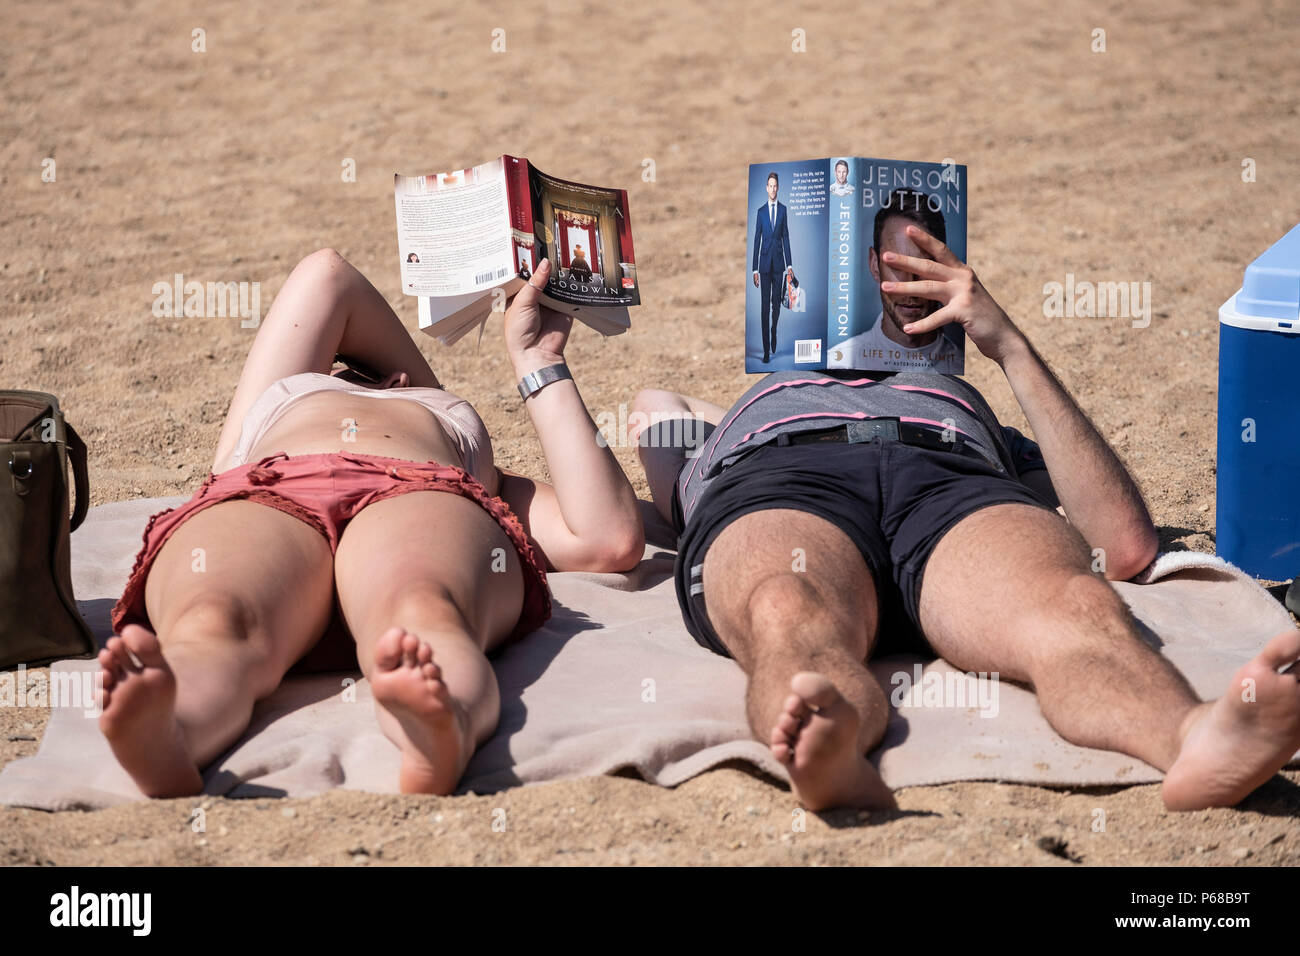 Loch Morlich, Highland, Scotland,UK. 28 June, 2018. A couple take advantage of hot weather to read on the beach at Loch Morlich near Aviemore in the Cairgorms as temperatures reached 31C the highest for many years. Credit: Iain Masterton/Alamy Live News - Stock Image